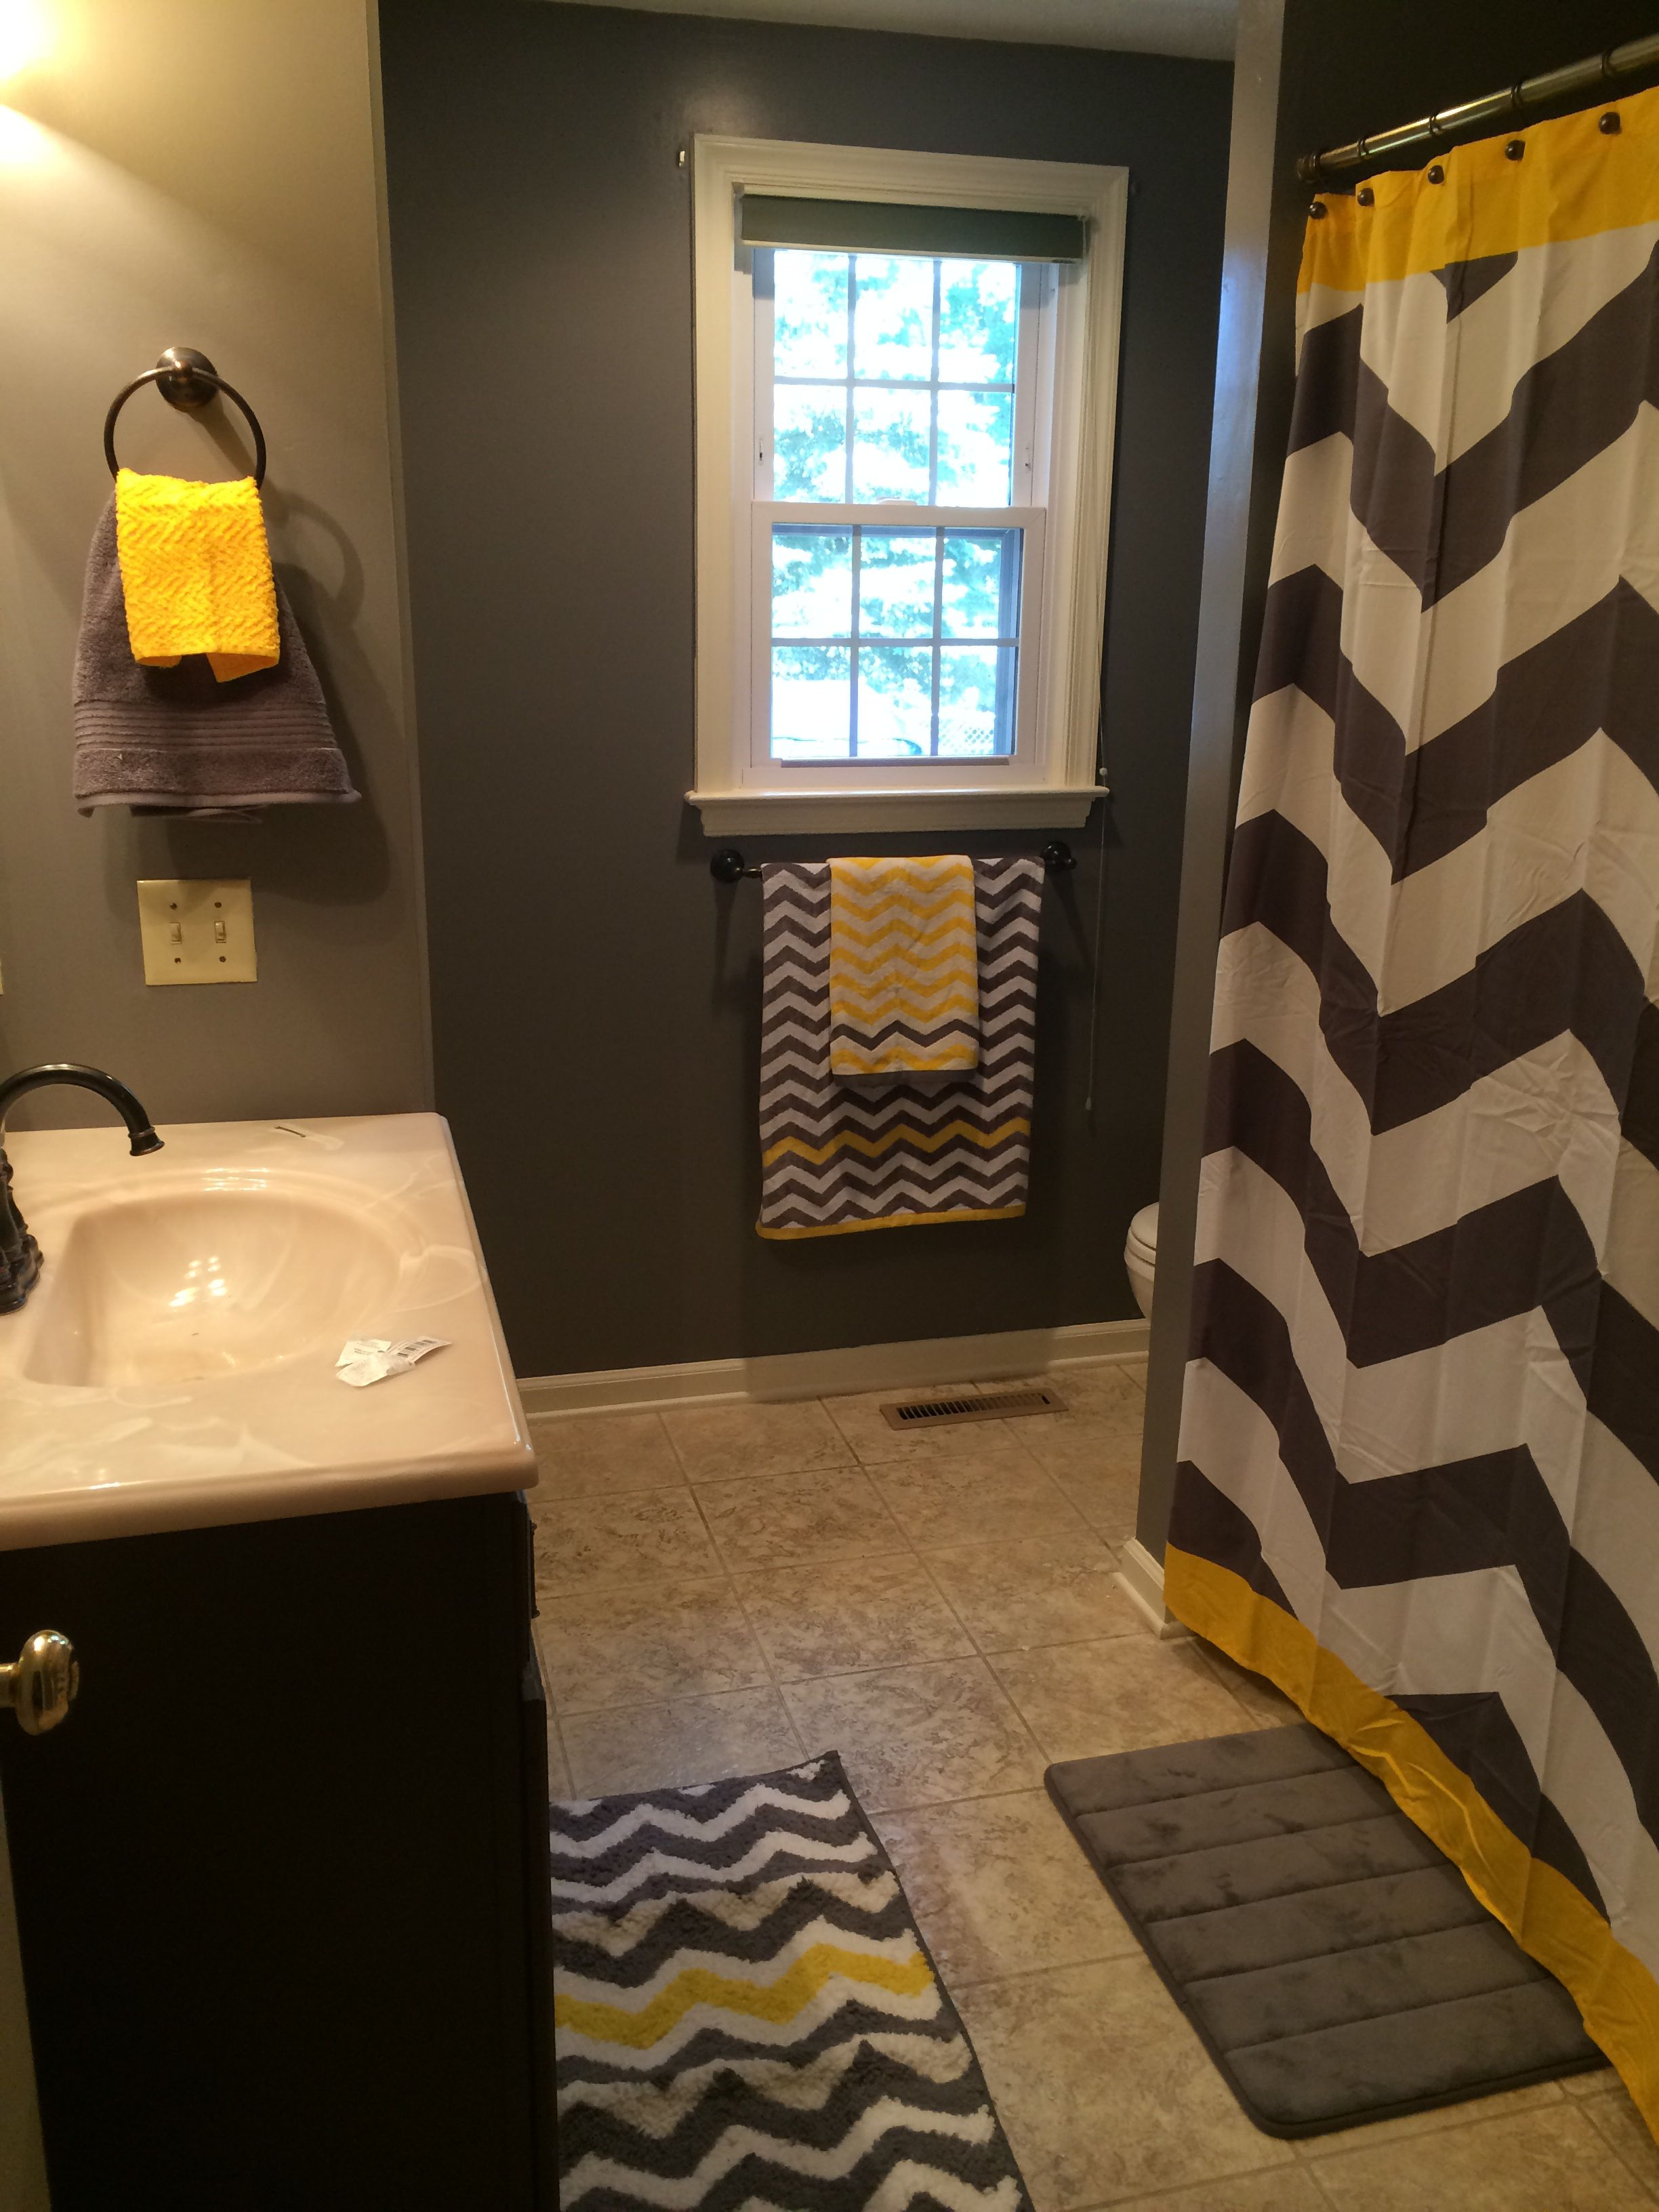 Gray and yellow bathroom color ideas - Gray And Yellow Chevron Bathroom Or Substitute The Yellow For Any Color